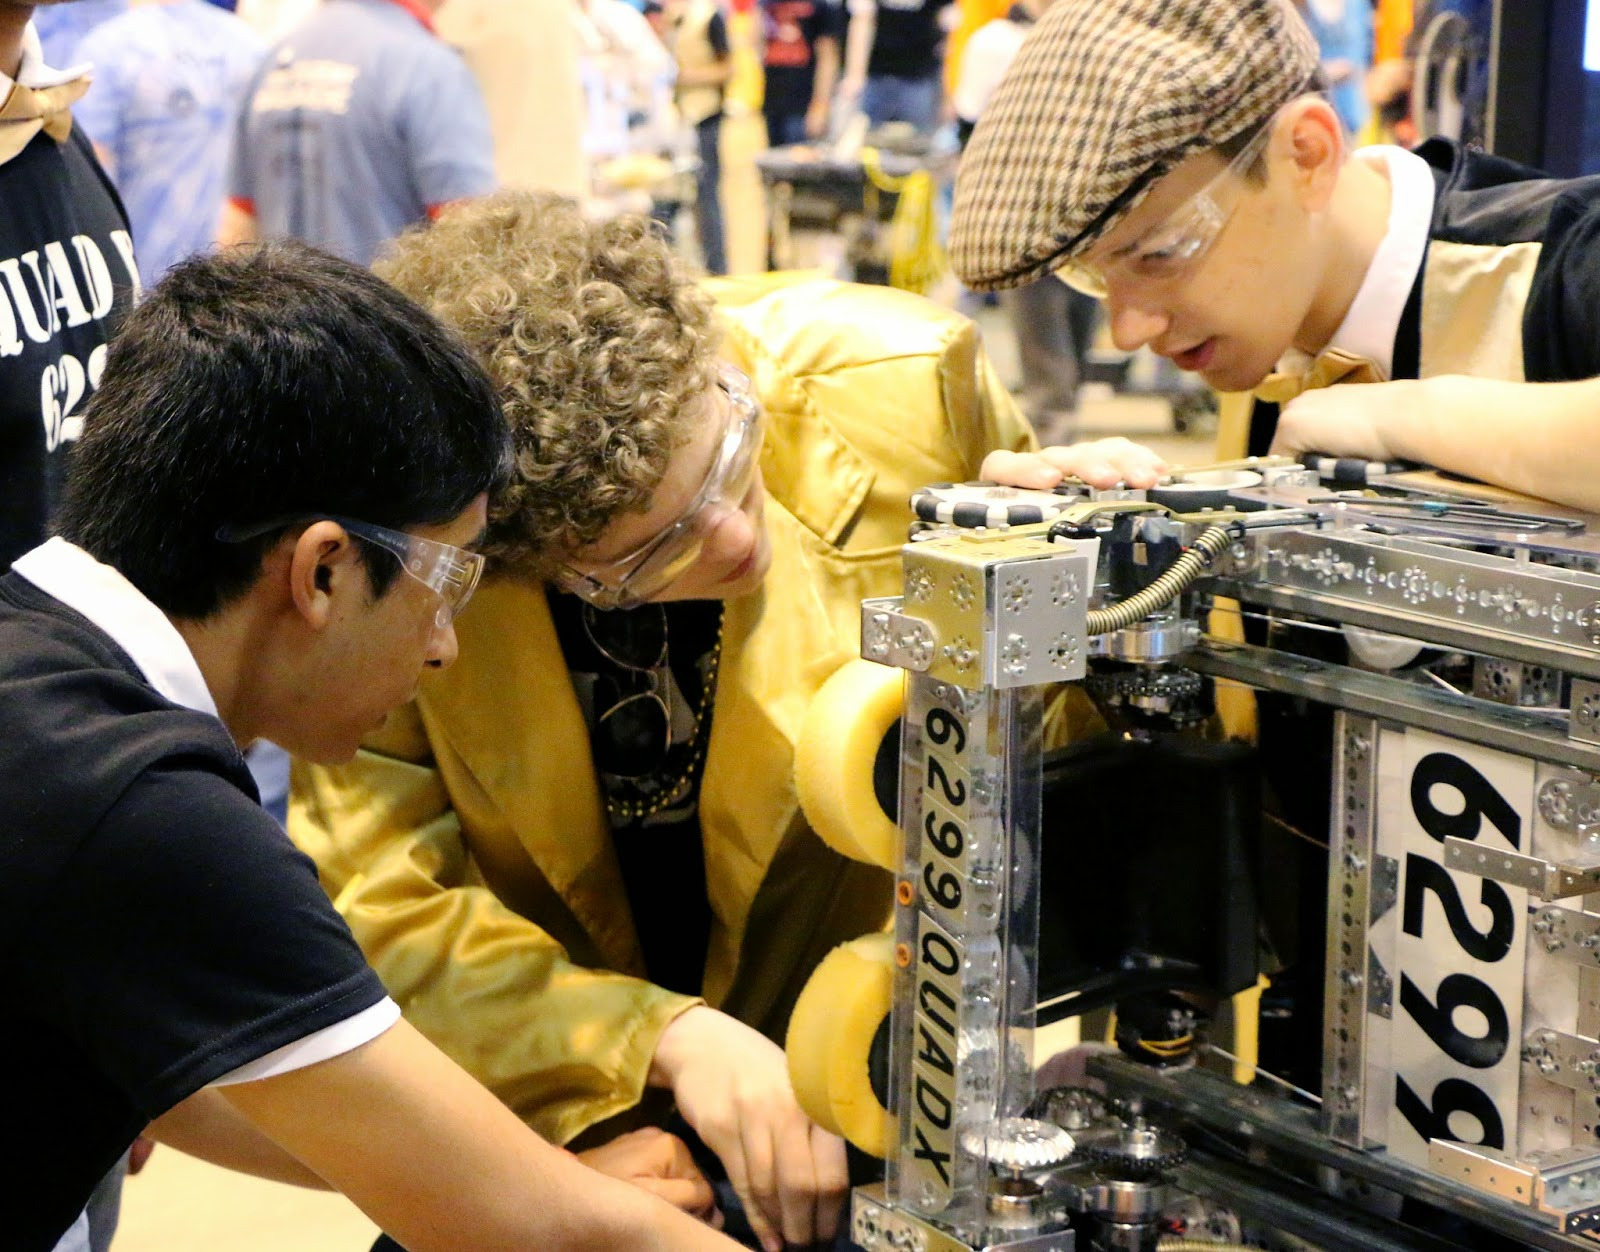 Registration for the 2014-15 FTC Season begins May 14, 2014 at 12 p.m. (ET).